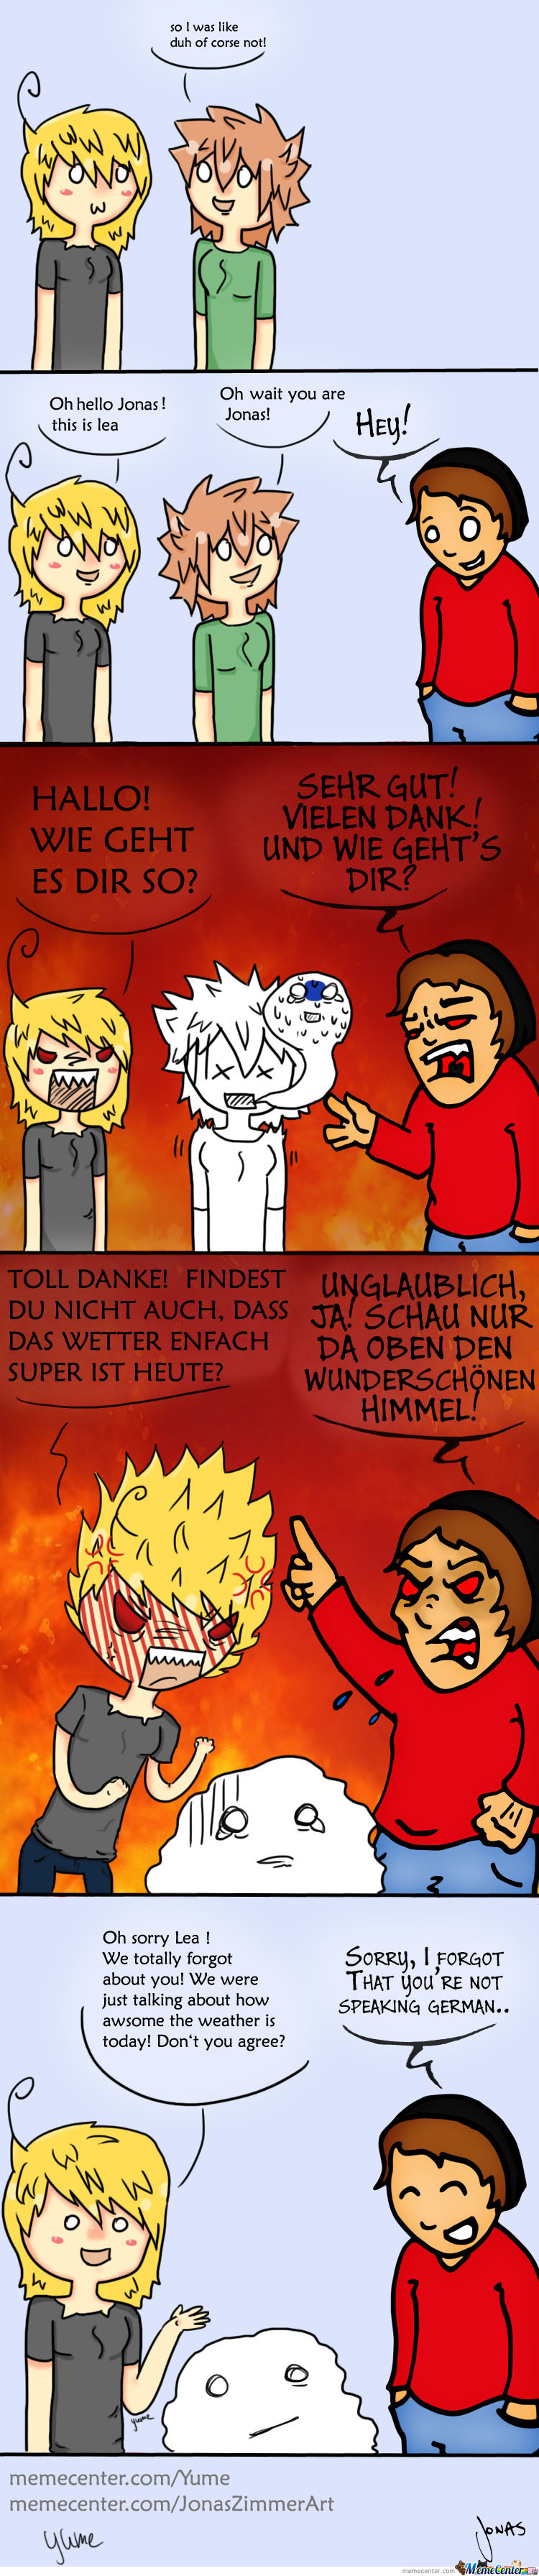 How We Think German Sounds To Foreigners (Starring Jonas Zimmer Art)